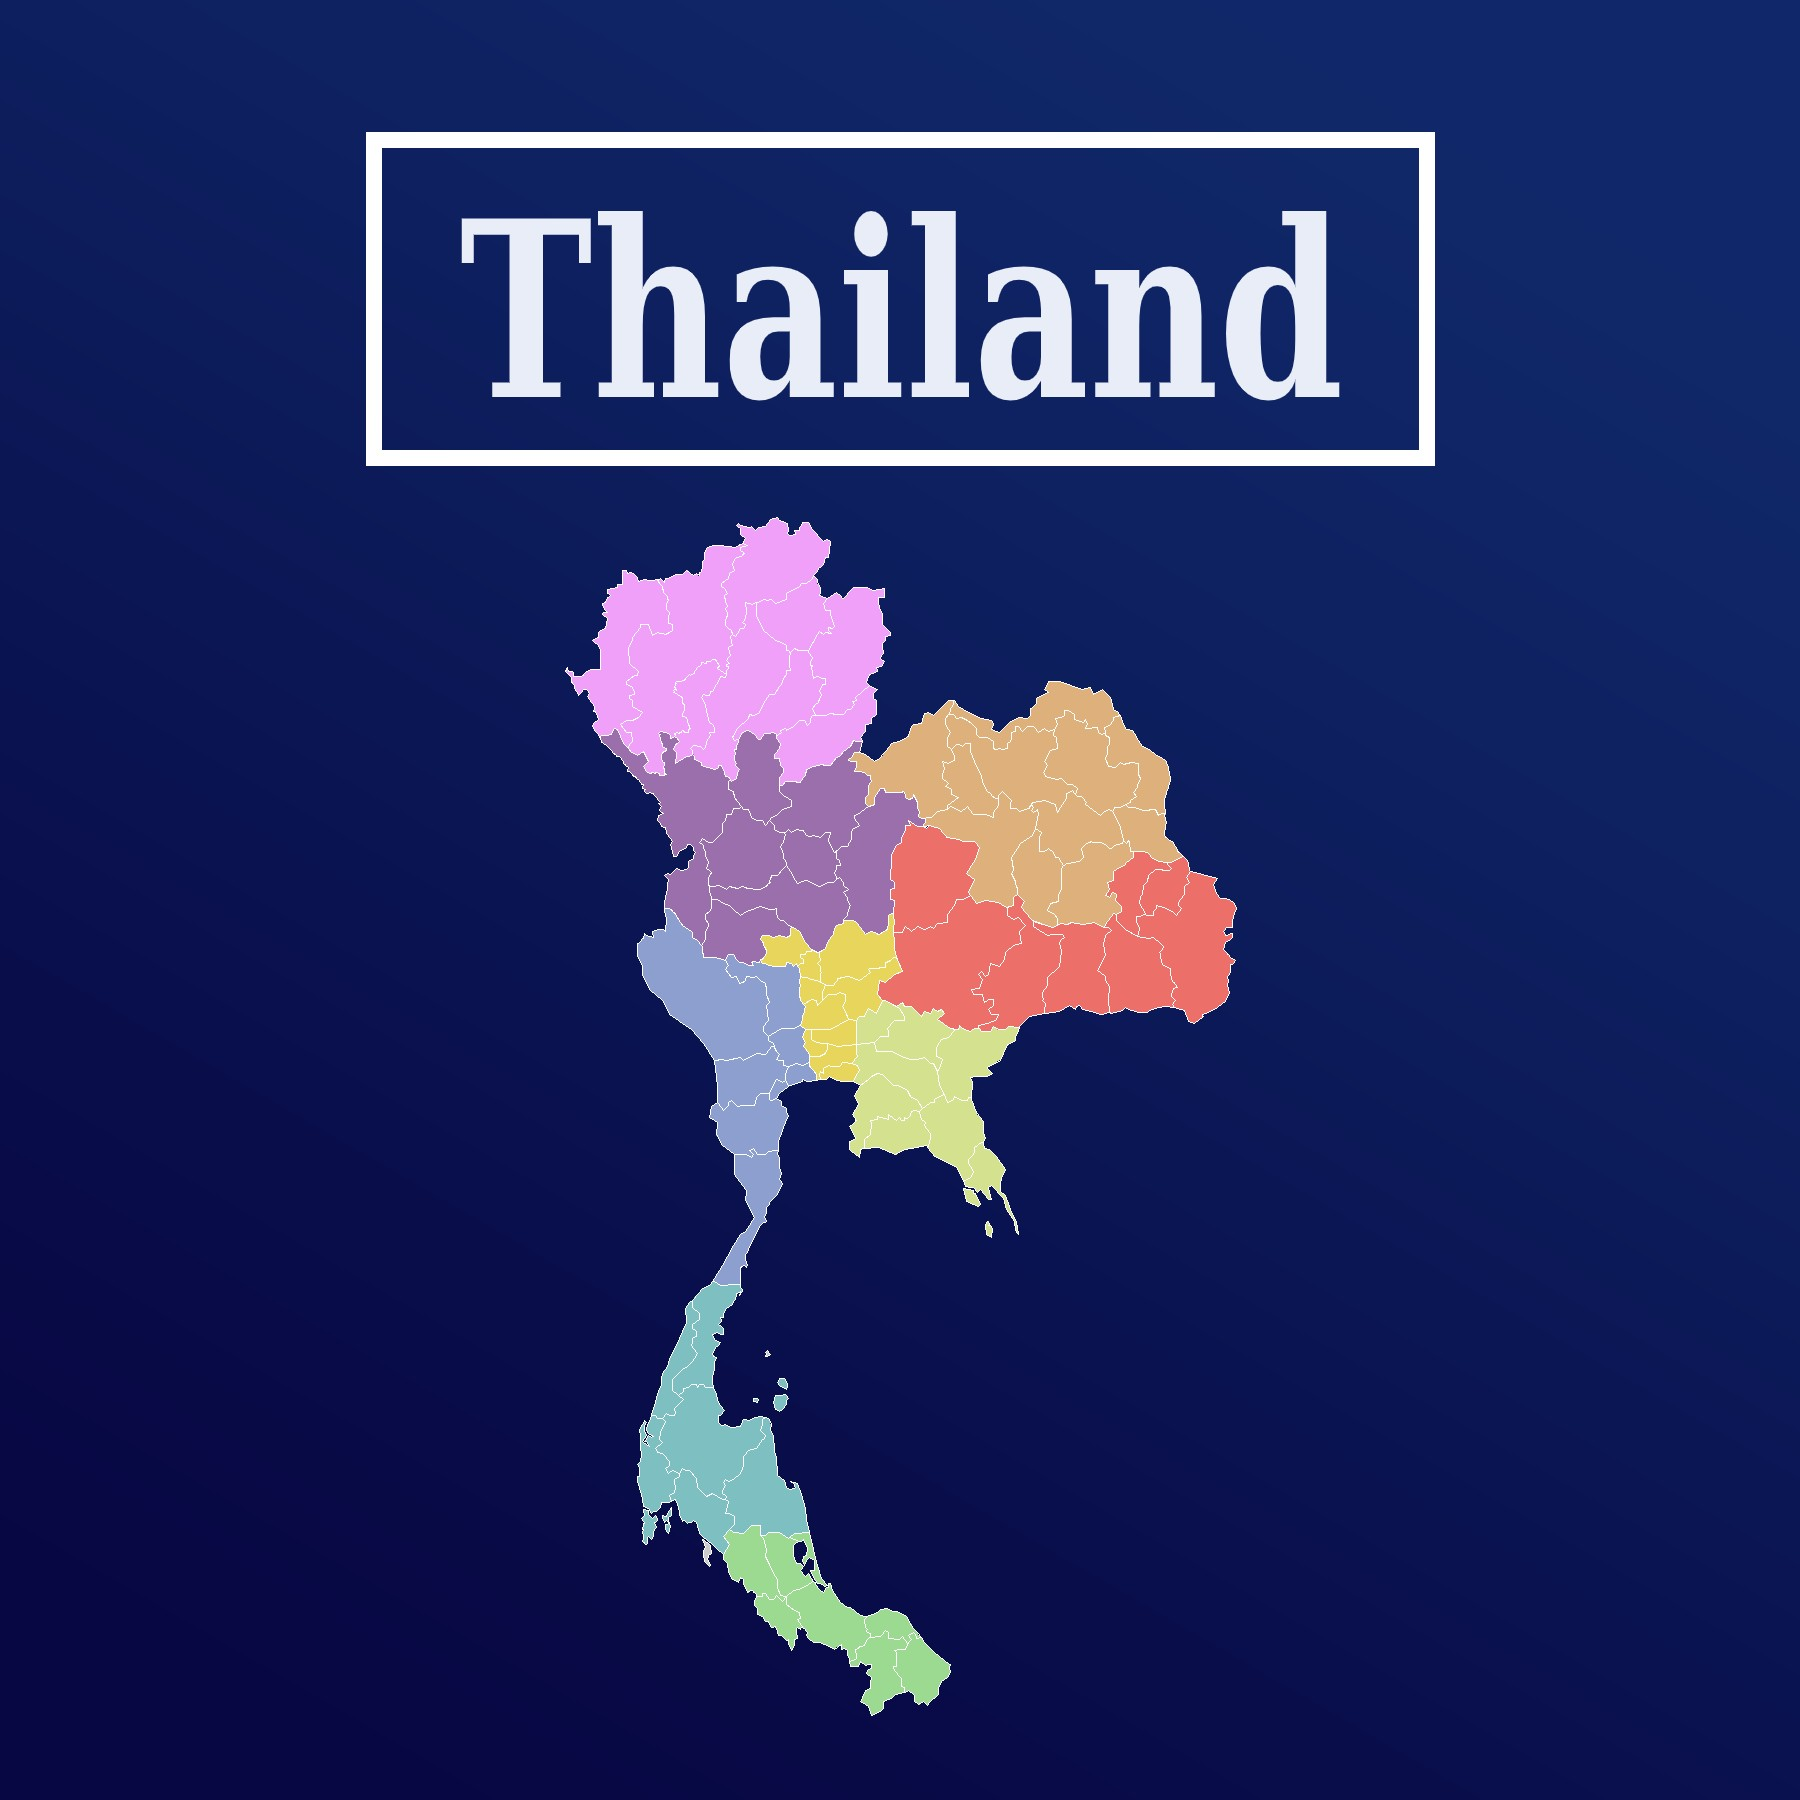 Episode 25: Shintaro Hara on Thailand's Deep South